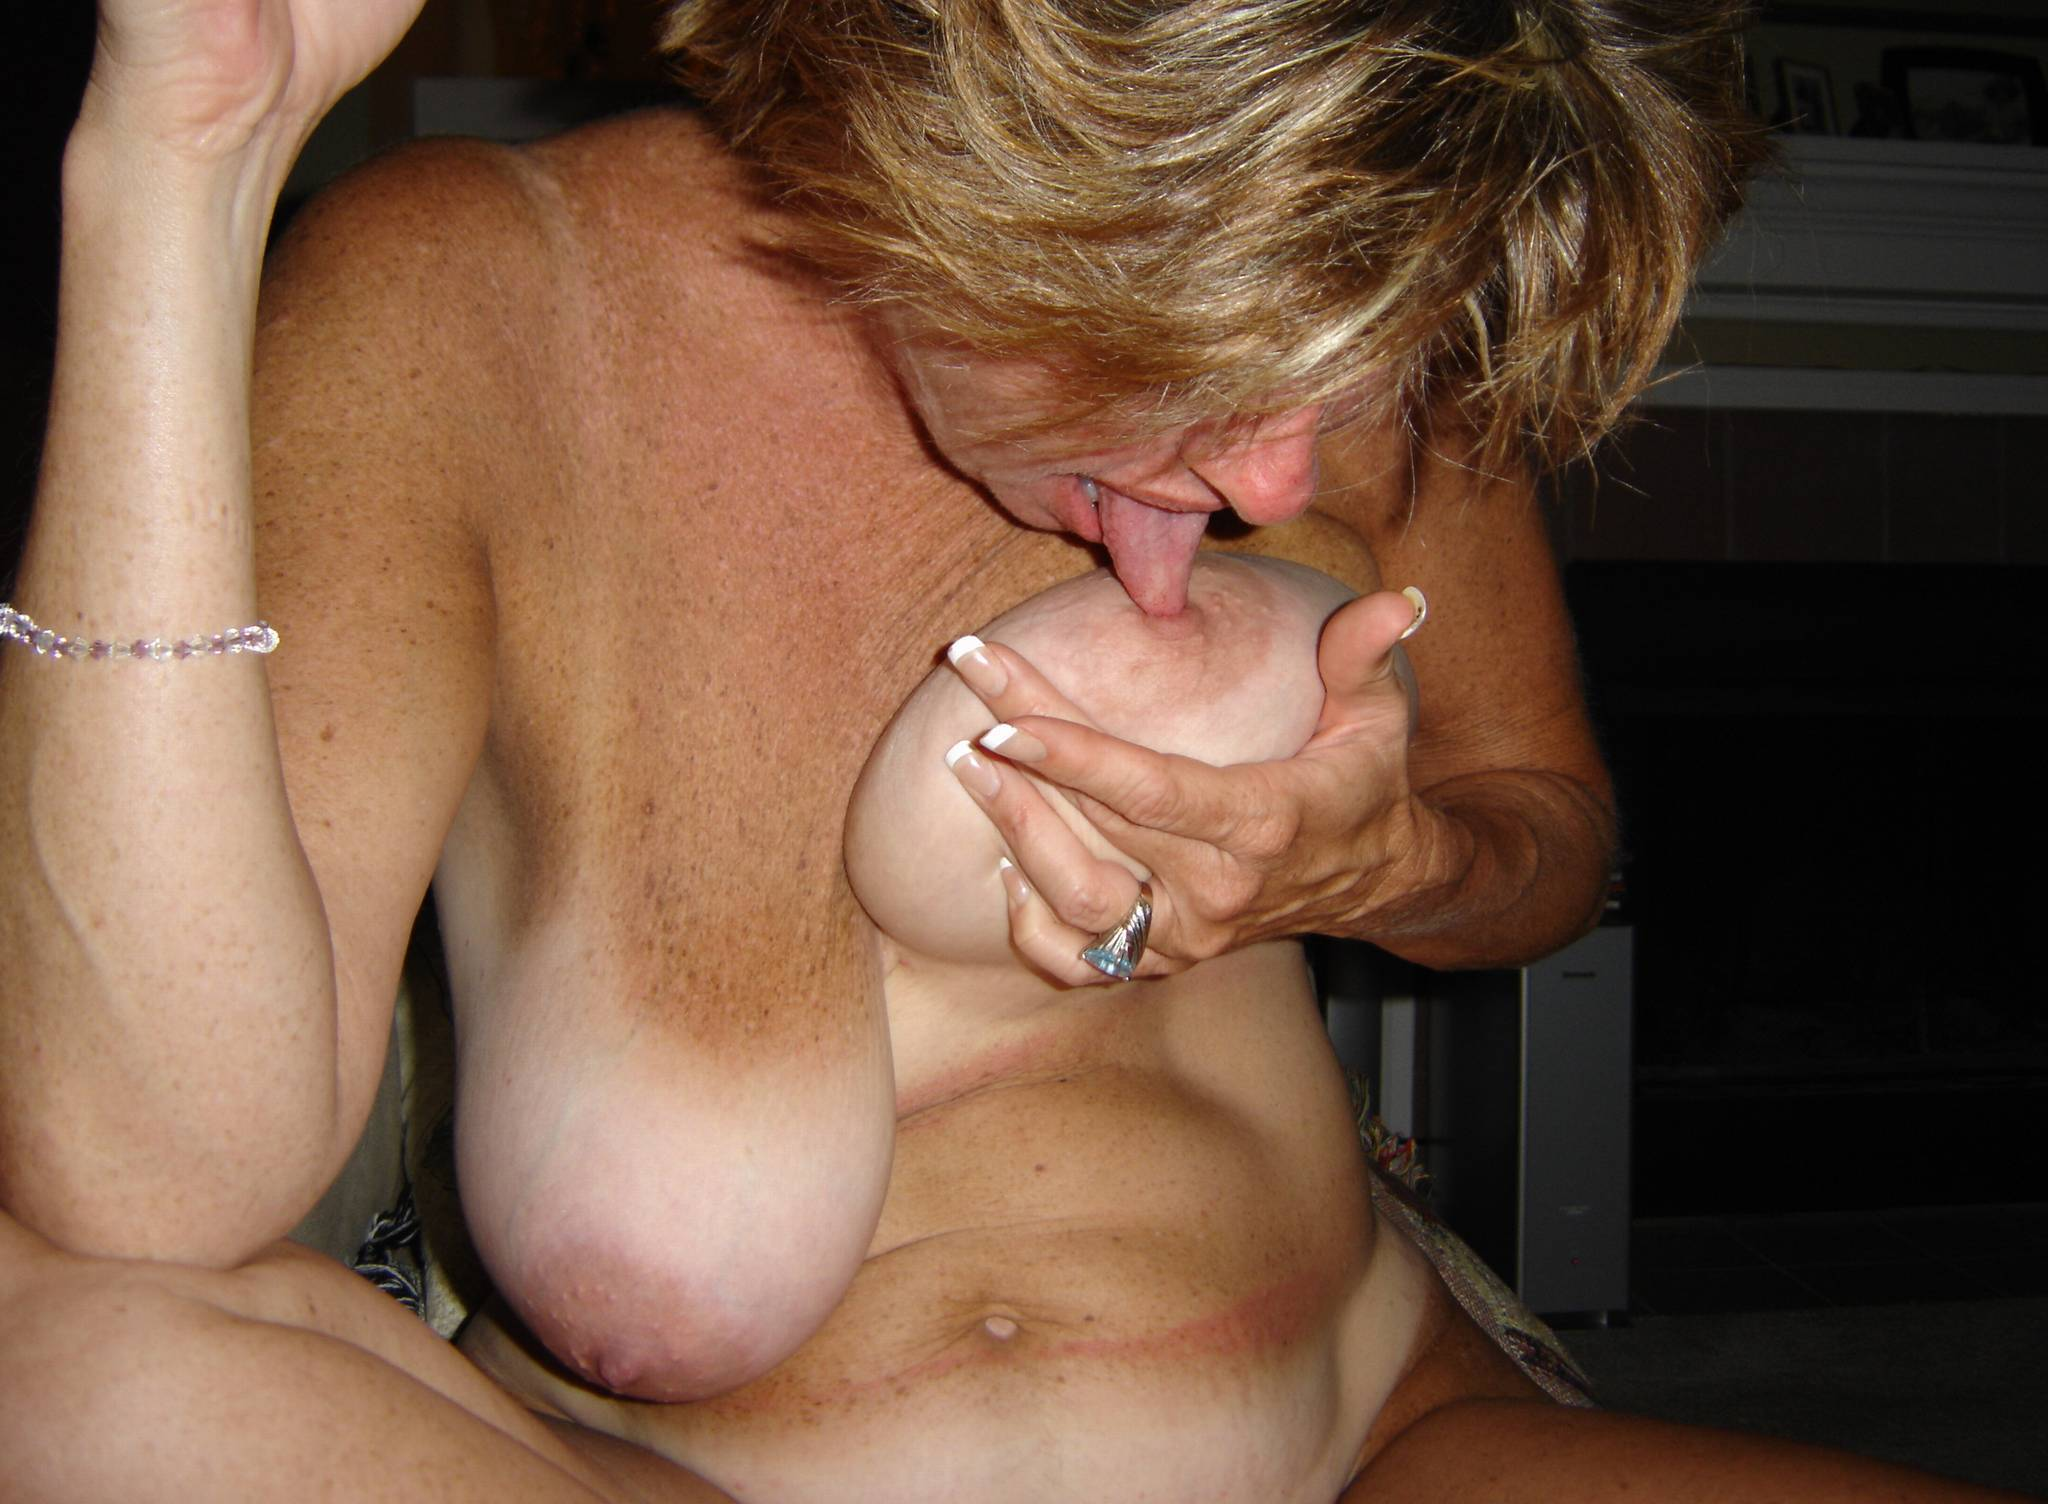 Those nipples look user uploaded home porn, enjoy our great collection